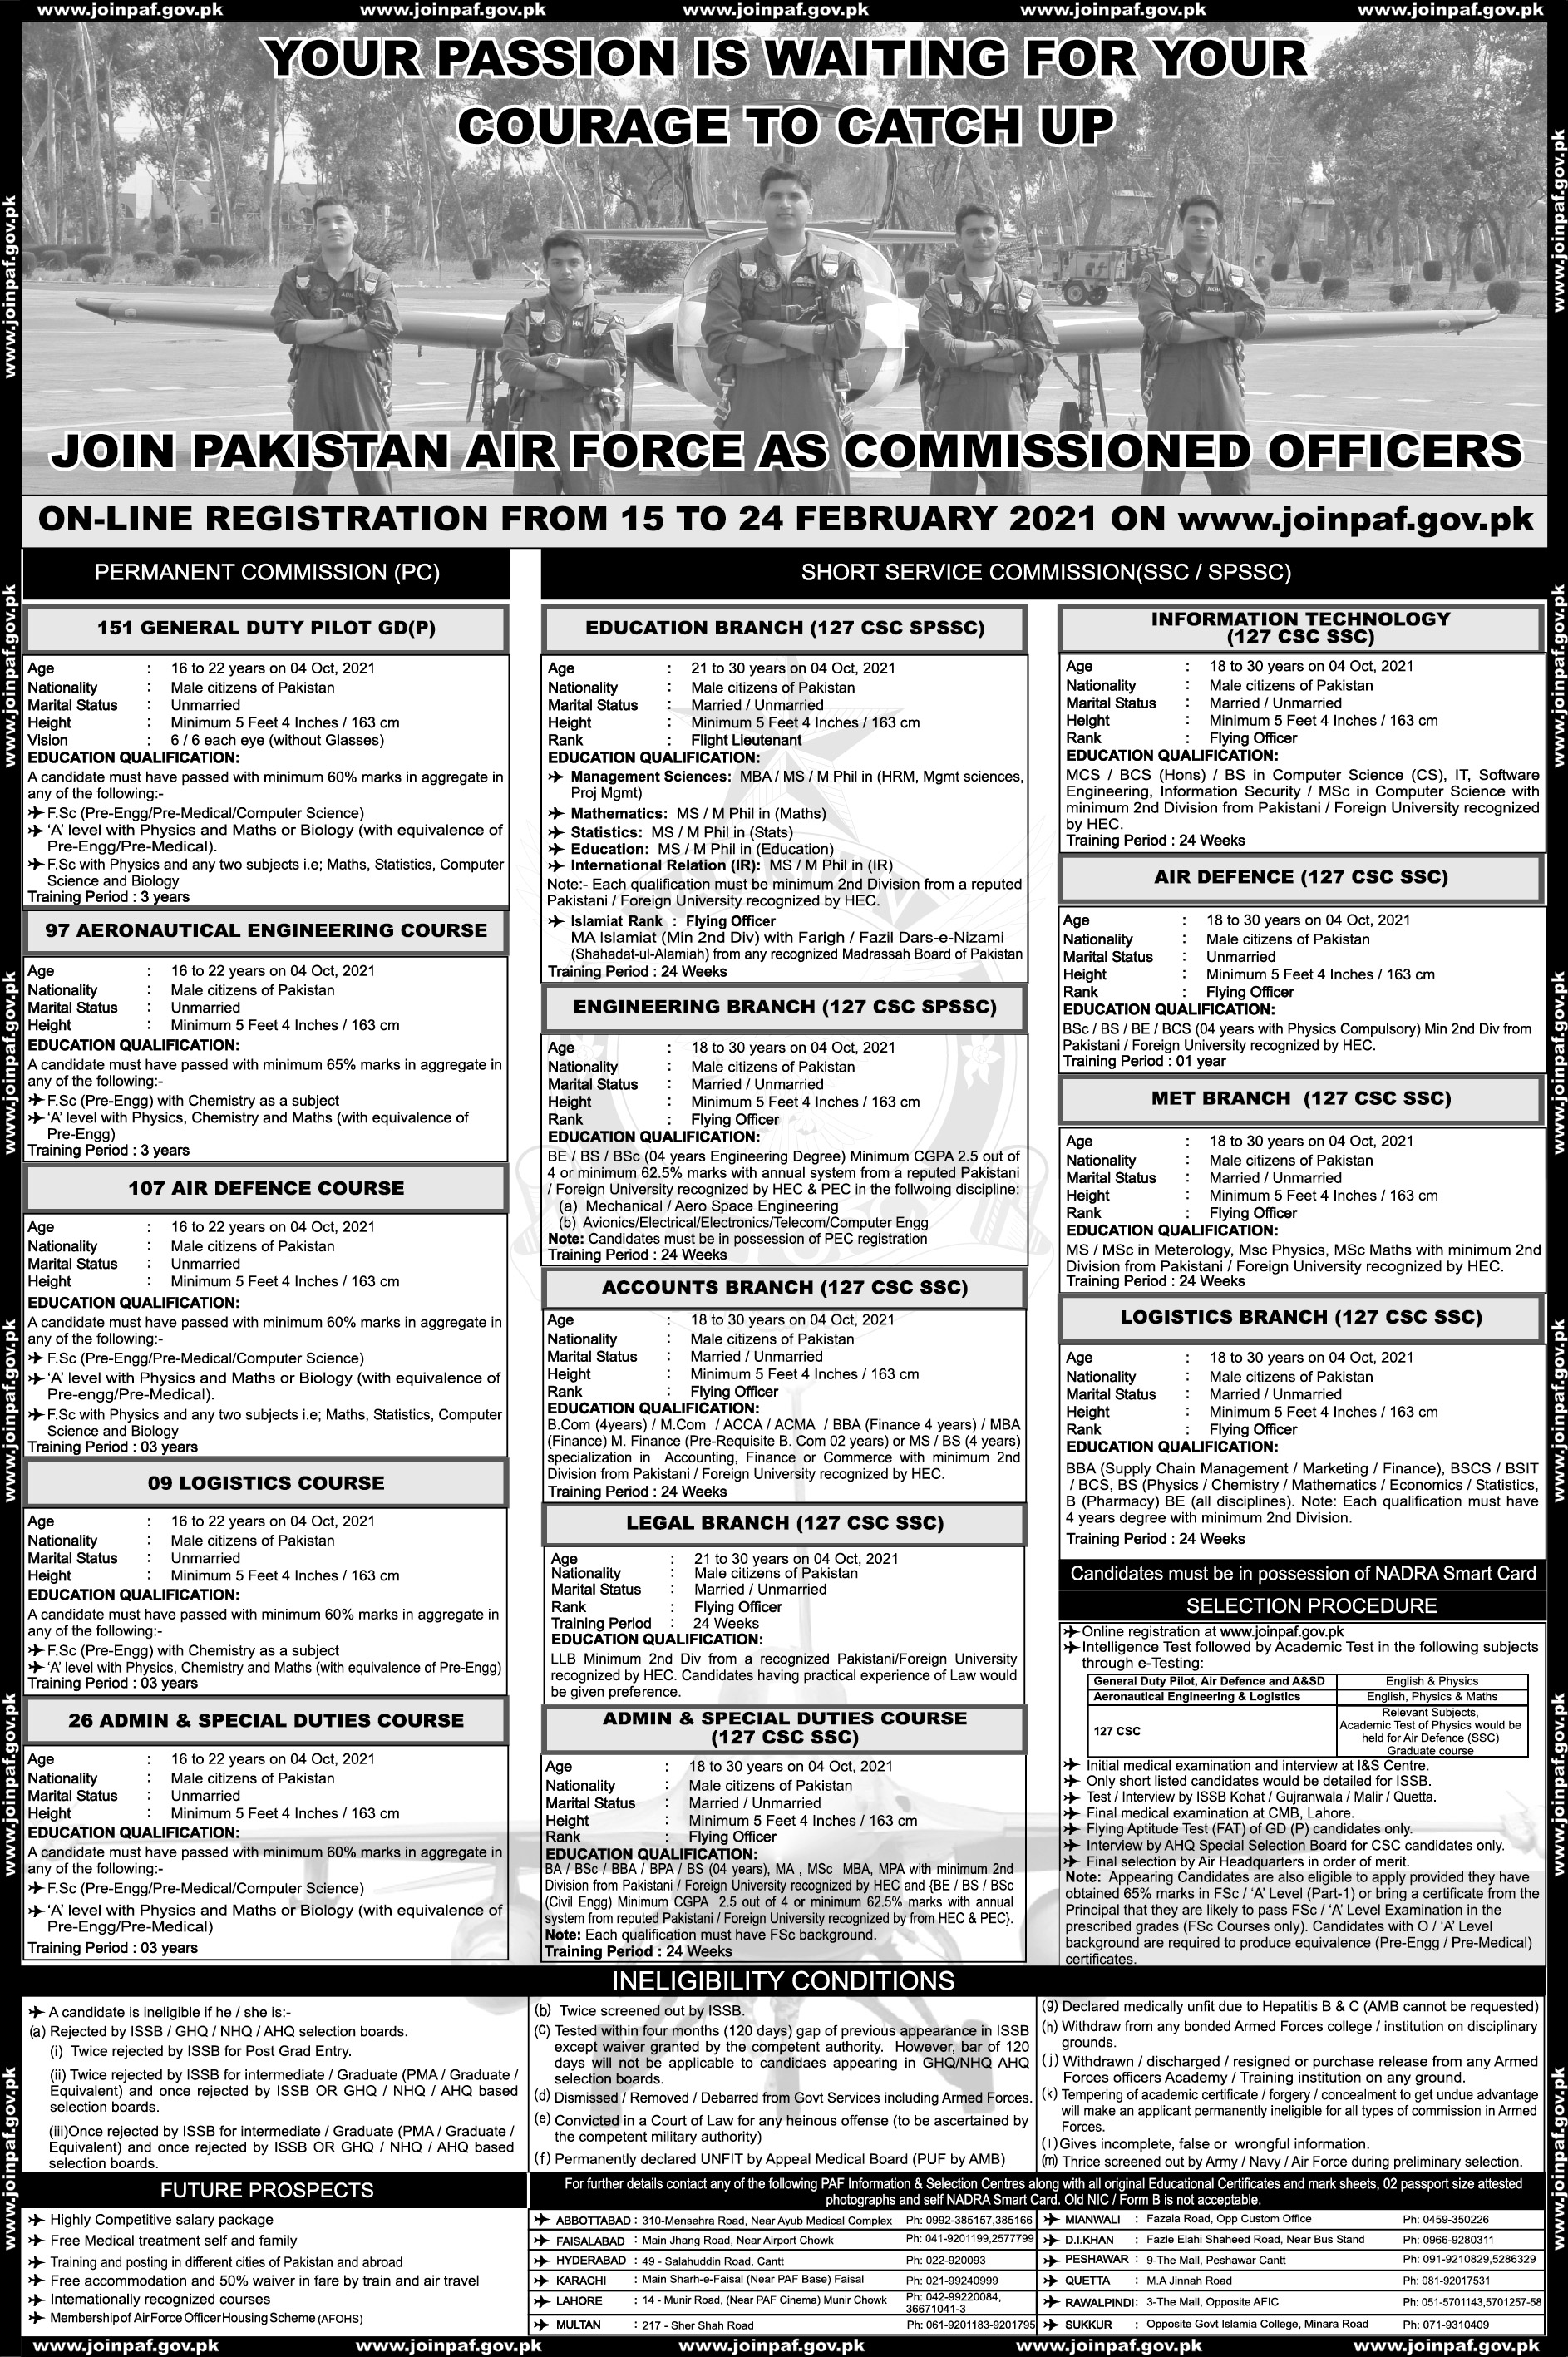 Join PAF ThroughPAF 2021 through151 GD (P) course, 107 Air Defence Course, 09 Logistics Course, Account Branch (127 CSC SSC), 126 Logistics Branch ( 126 CSC SSC), 26 Admin & Special Duties Course, Admin and Special Duties Course (127 CSC SSC), Education Branch (127 CSC SPSSC), Engineering Branch (127 CSC SPSSC), Met Branch (127 CSC SSC),Air Defence (127 CSC SSC), Information Technology 127 and Legal Branch 127